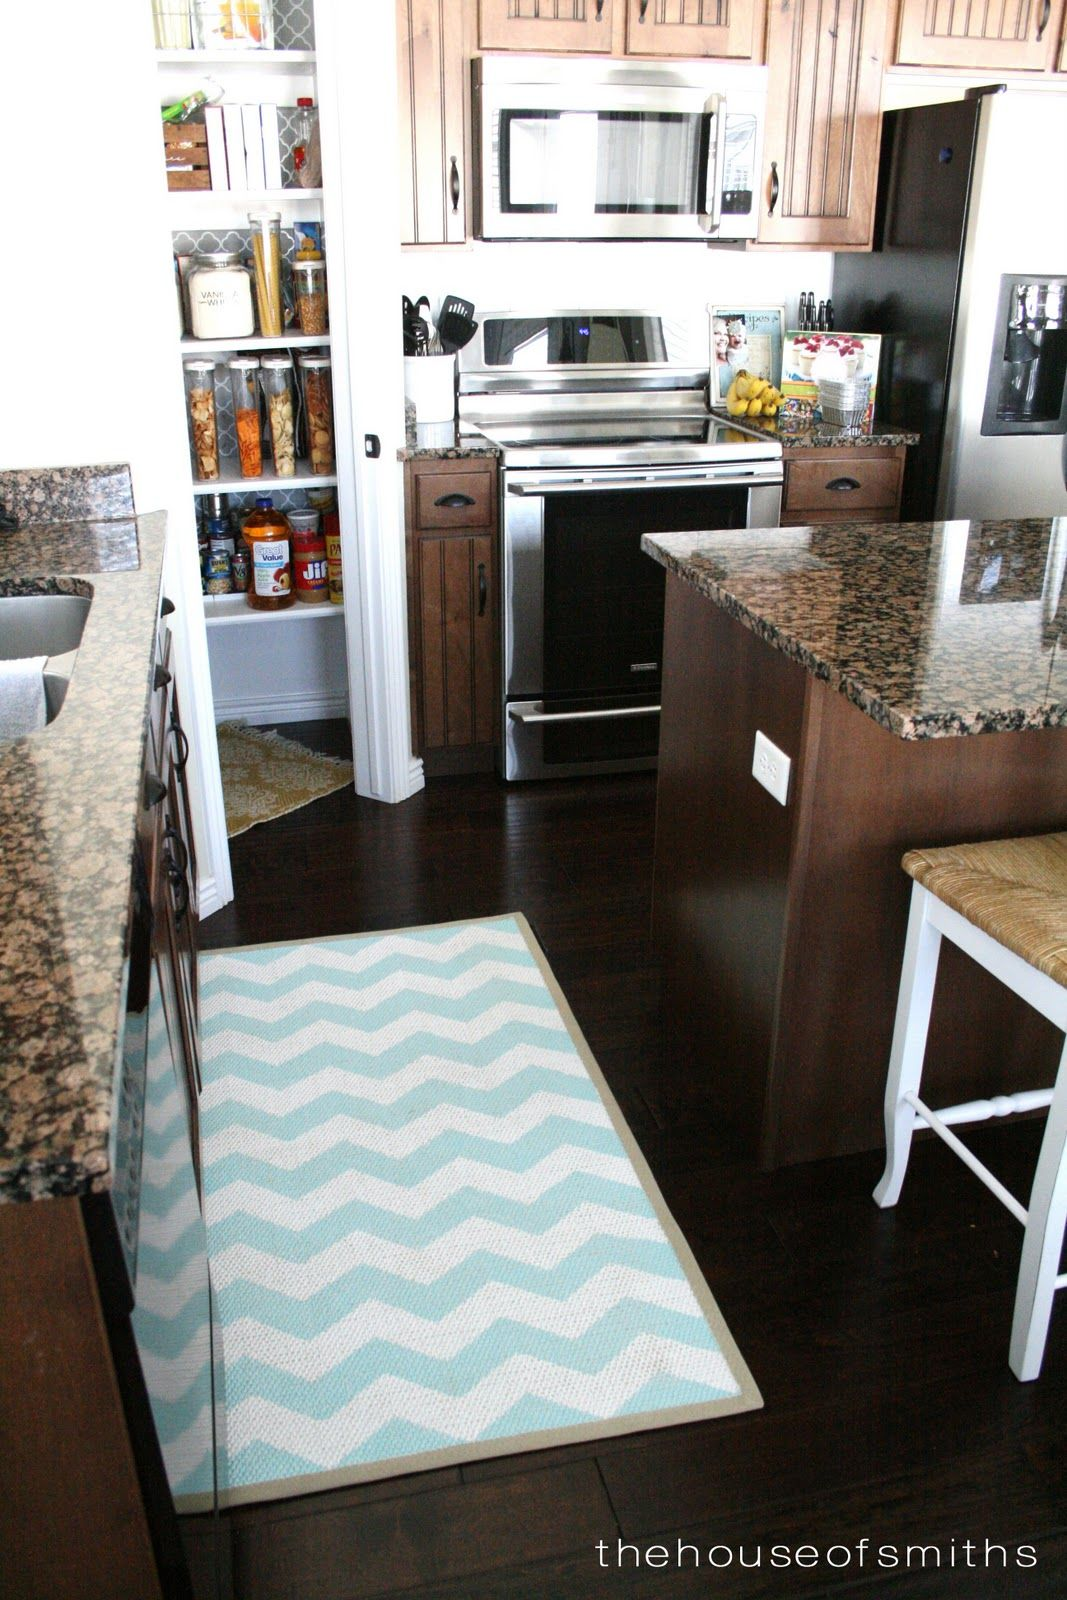 Superieur Chevron Painted Rug From IKEA Tutorial | Kitchen In White ...